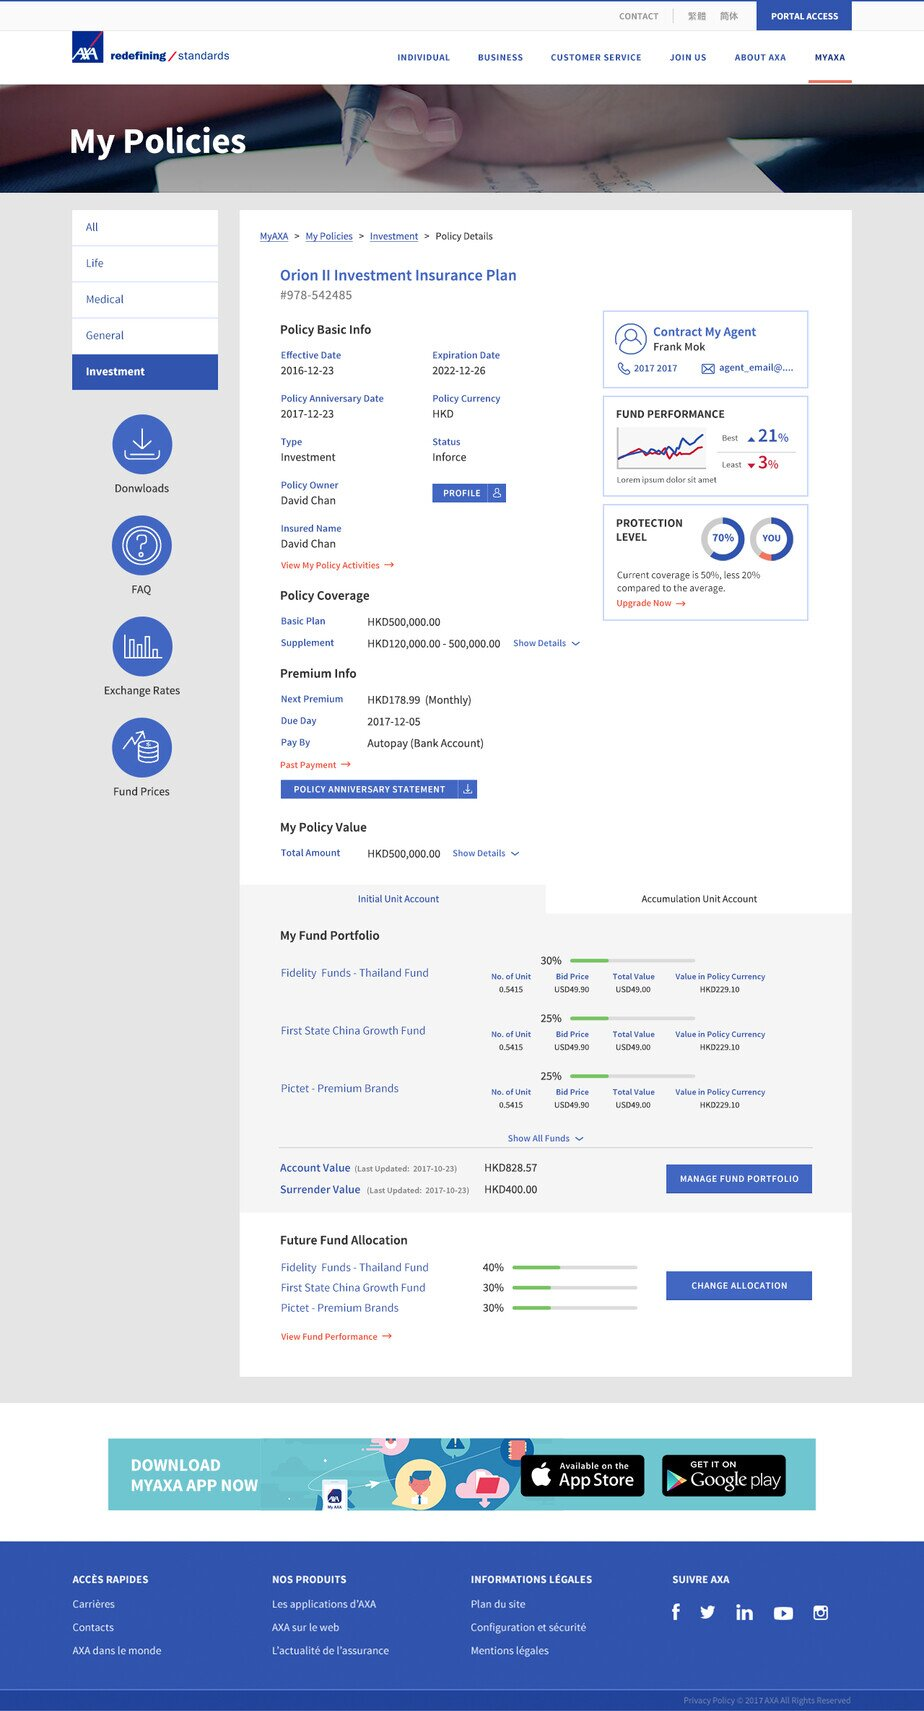 AXA website screenshot for desktop version 3 of 5